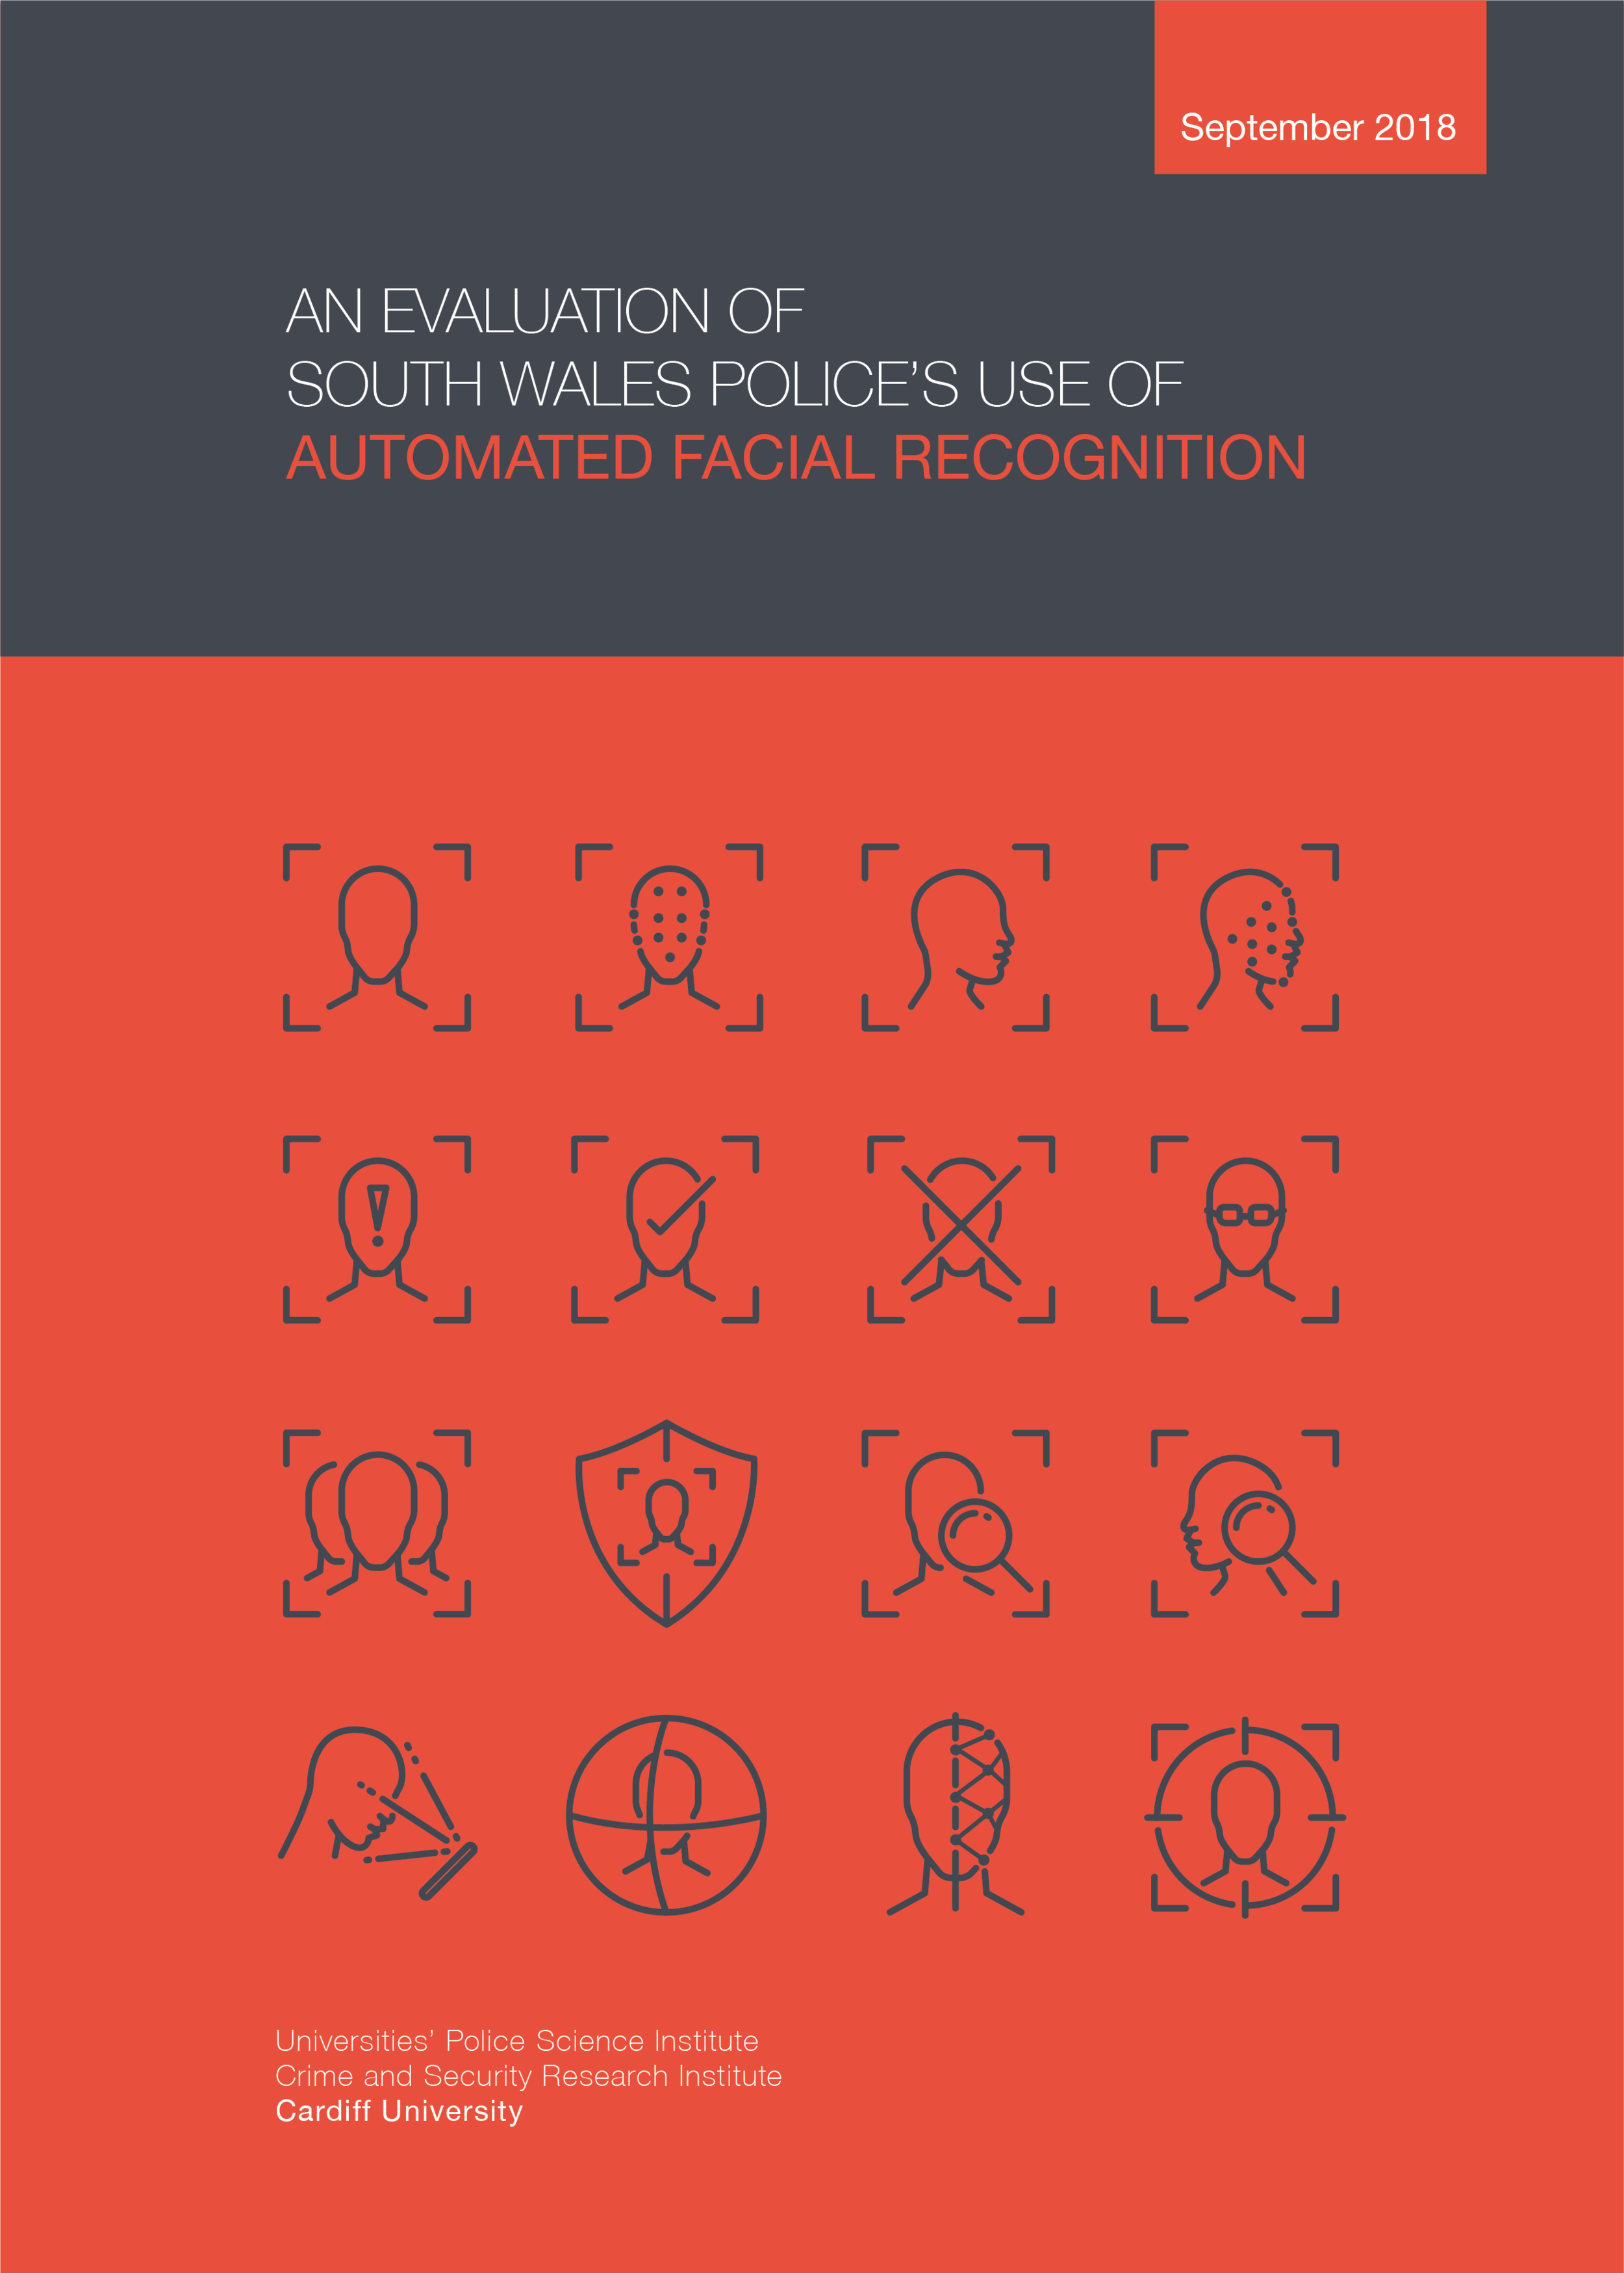 An Evaluation of South Wales Police's Use of Automated Facial Recognition Technology